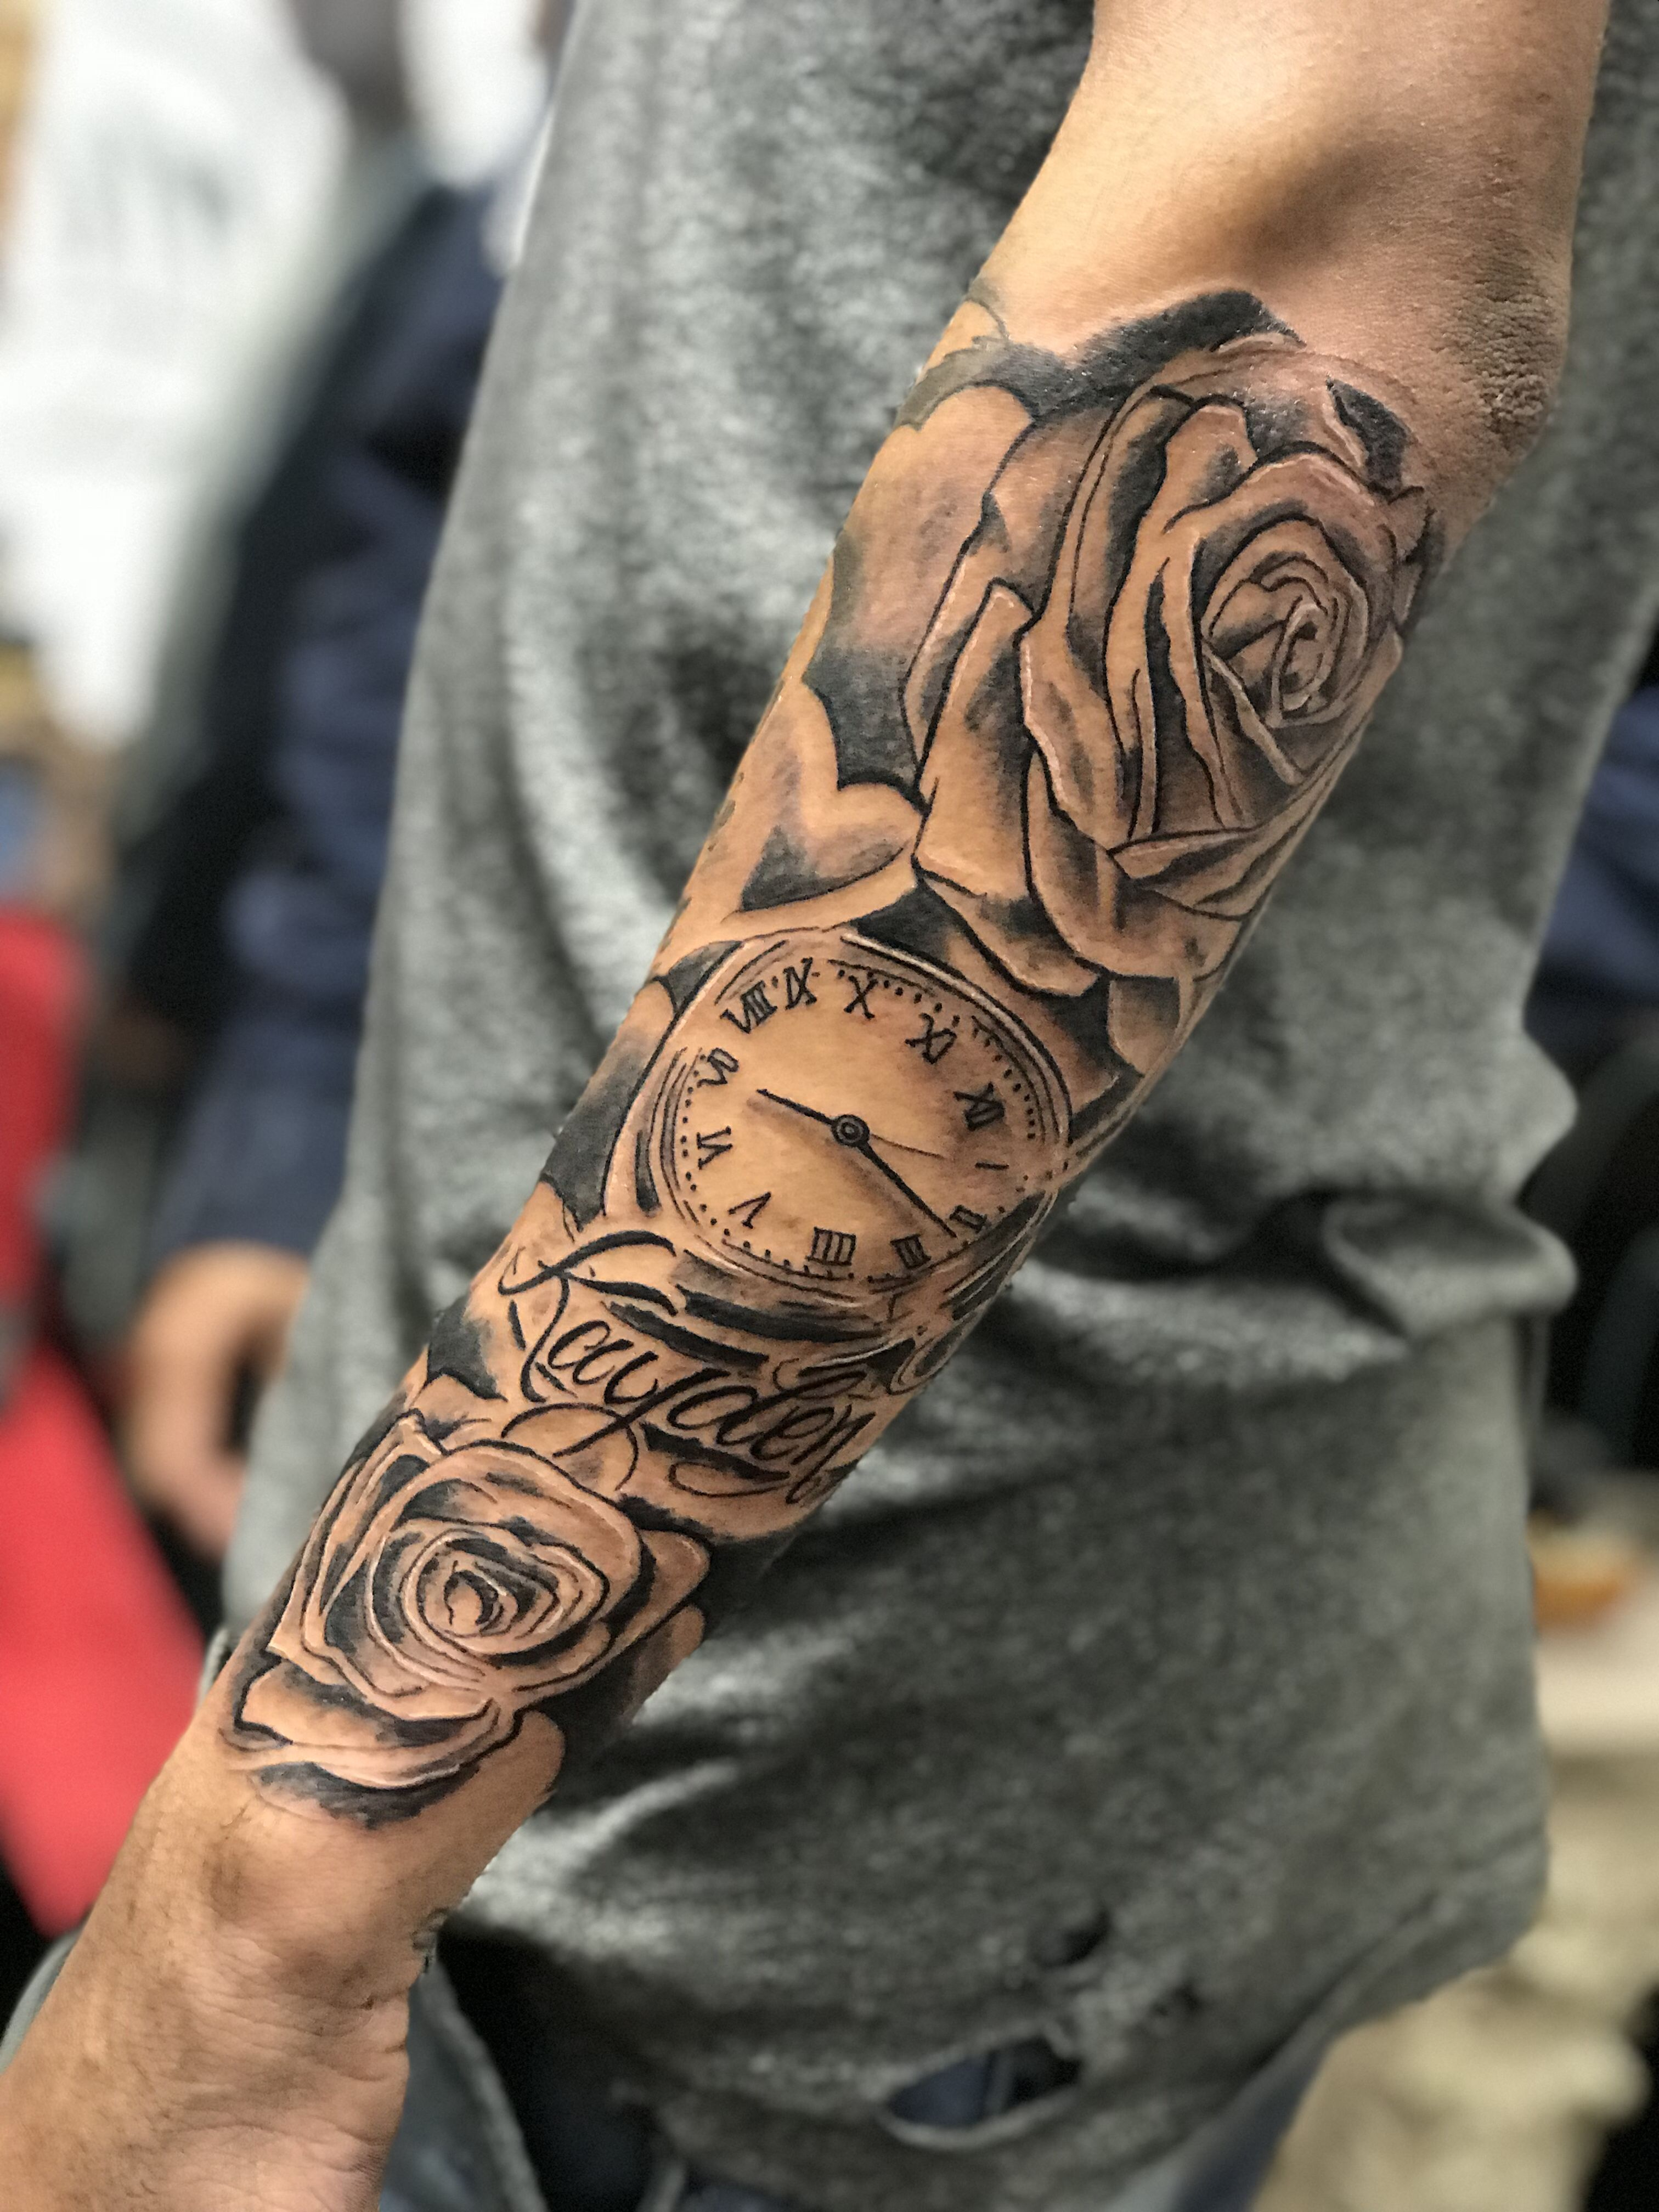 Pin by Grizzi on Tattoo Forearm tattoo men, Cool forearm